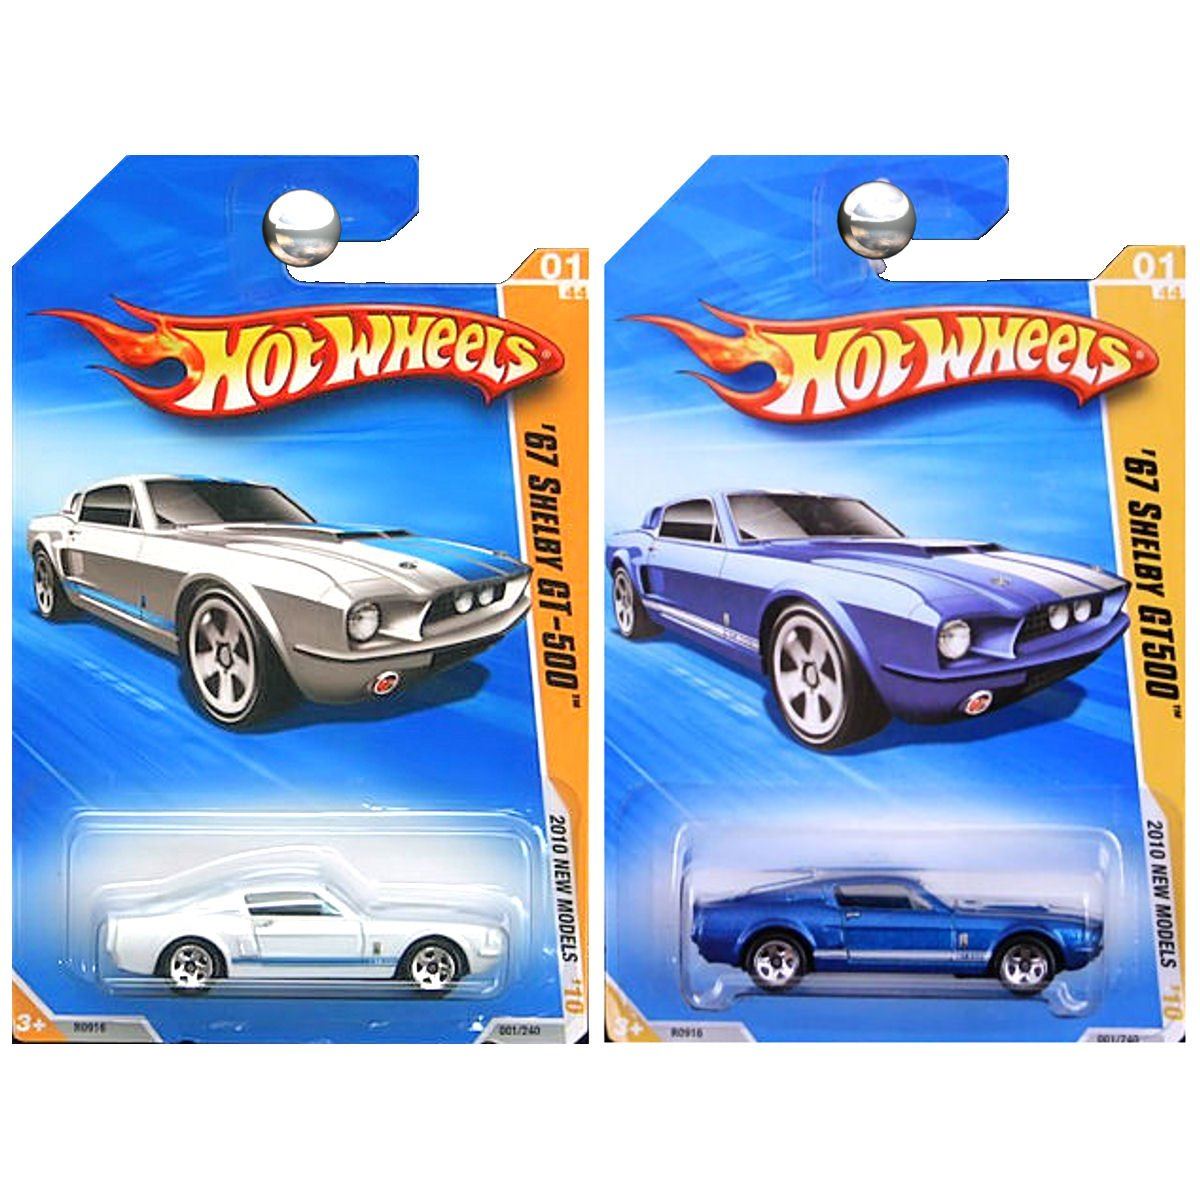 Amazon com hot wheels 2010 new models ford mustang 1967 shelby gt500 gt 500 in blue and white set of 2 toys games